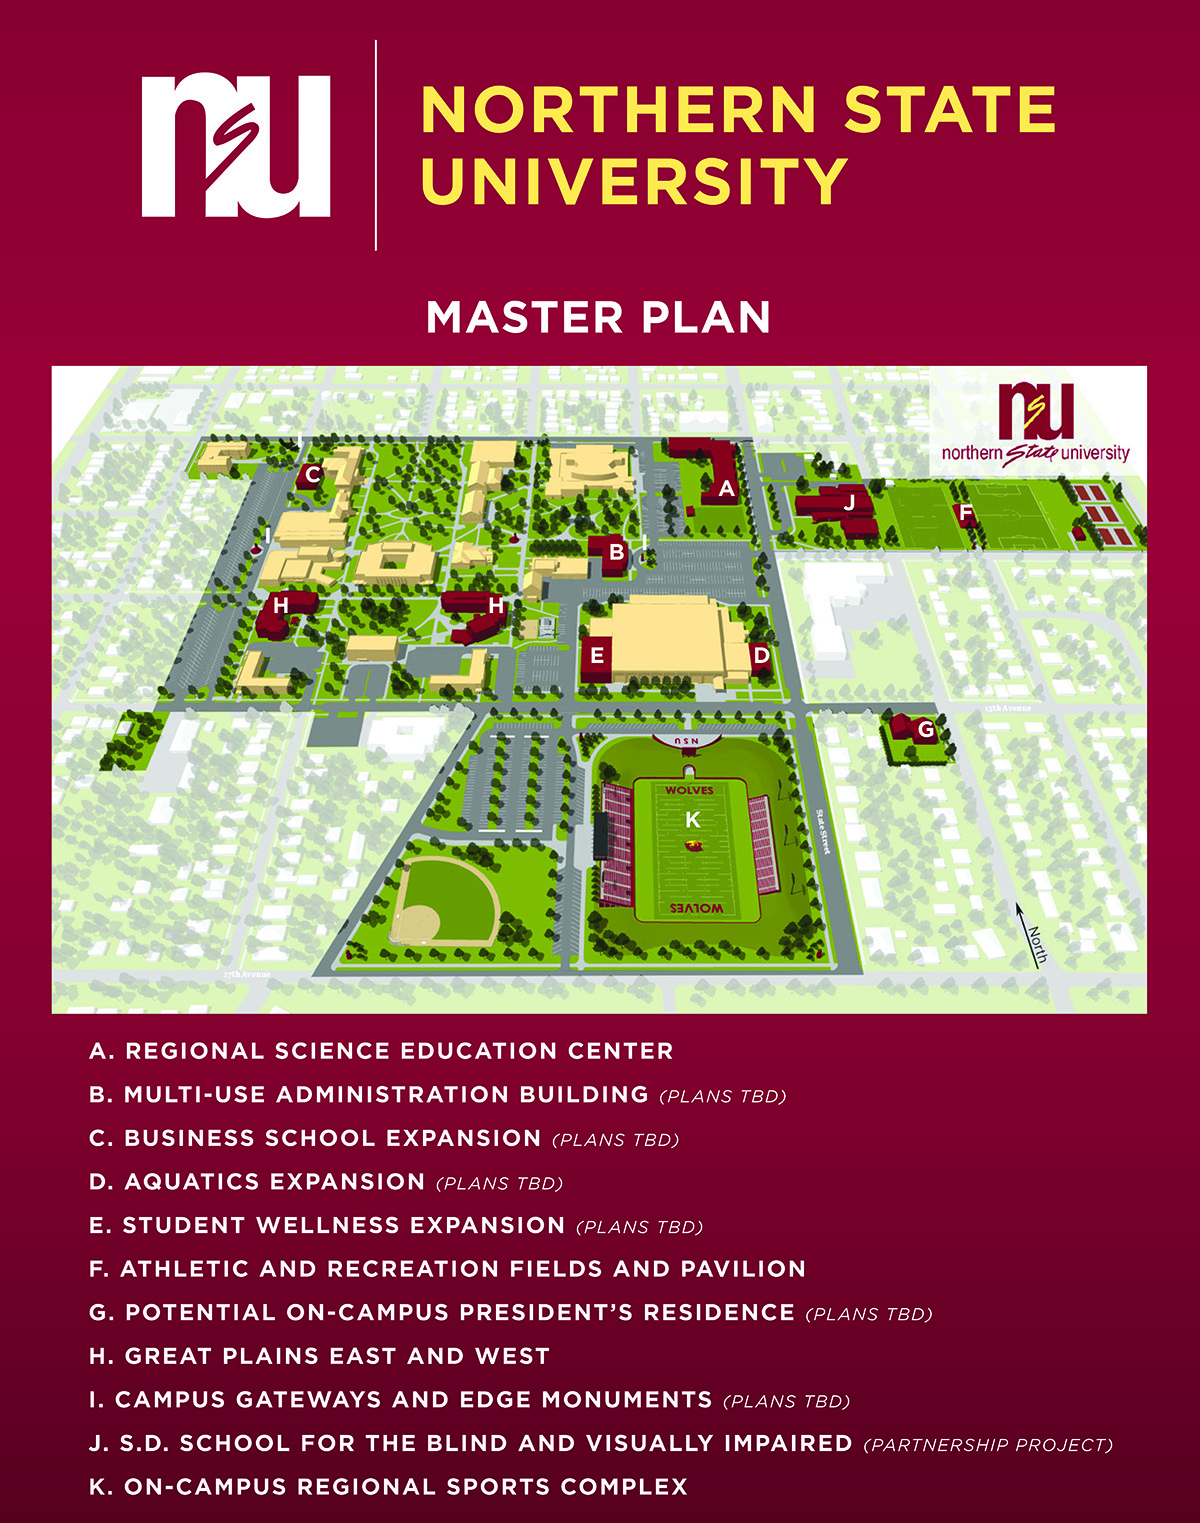 Norfolk State Campus Map.Nsu Master Plan Northern State University